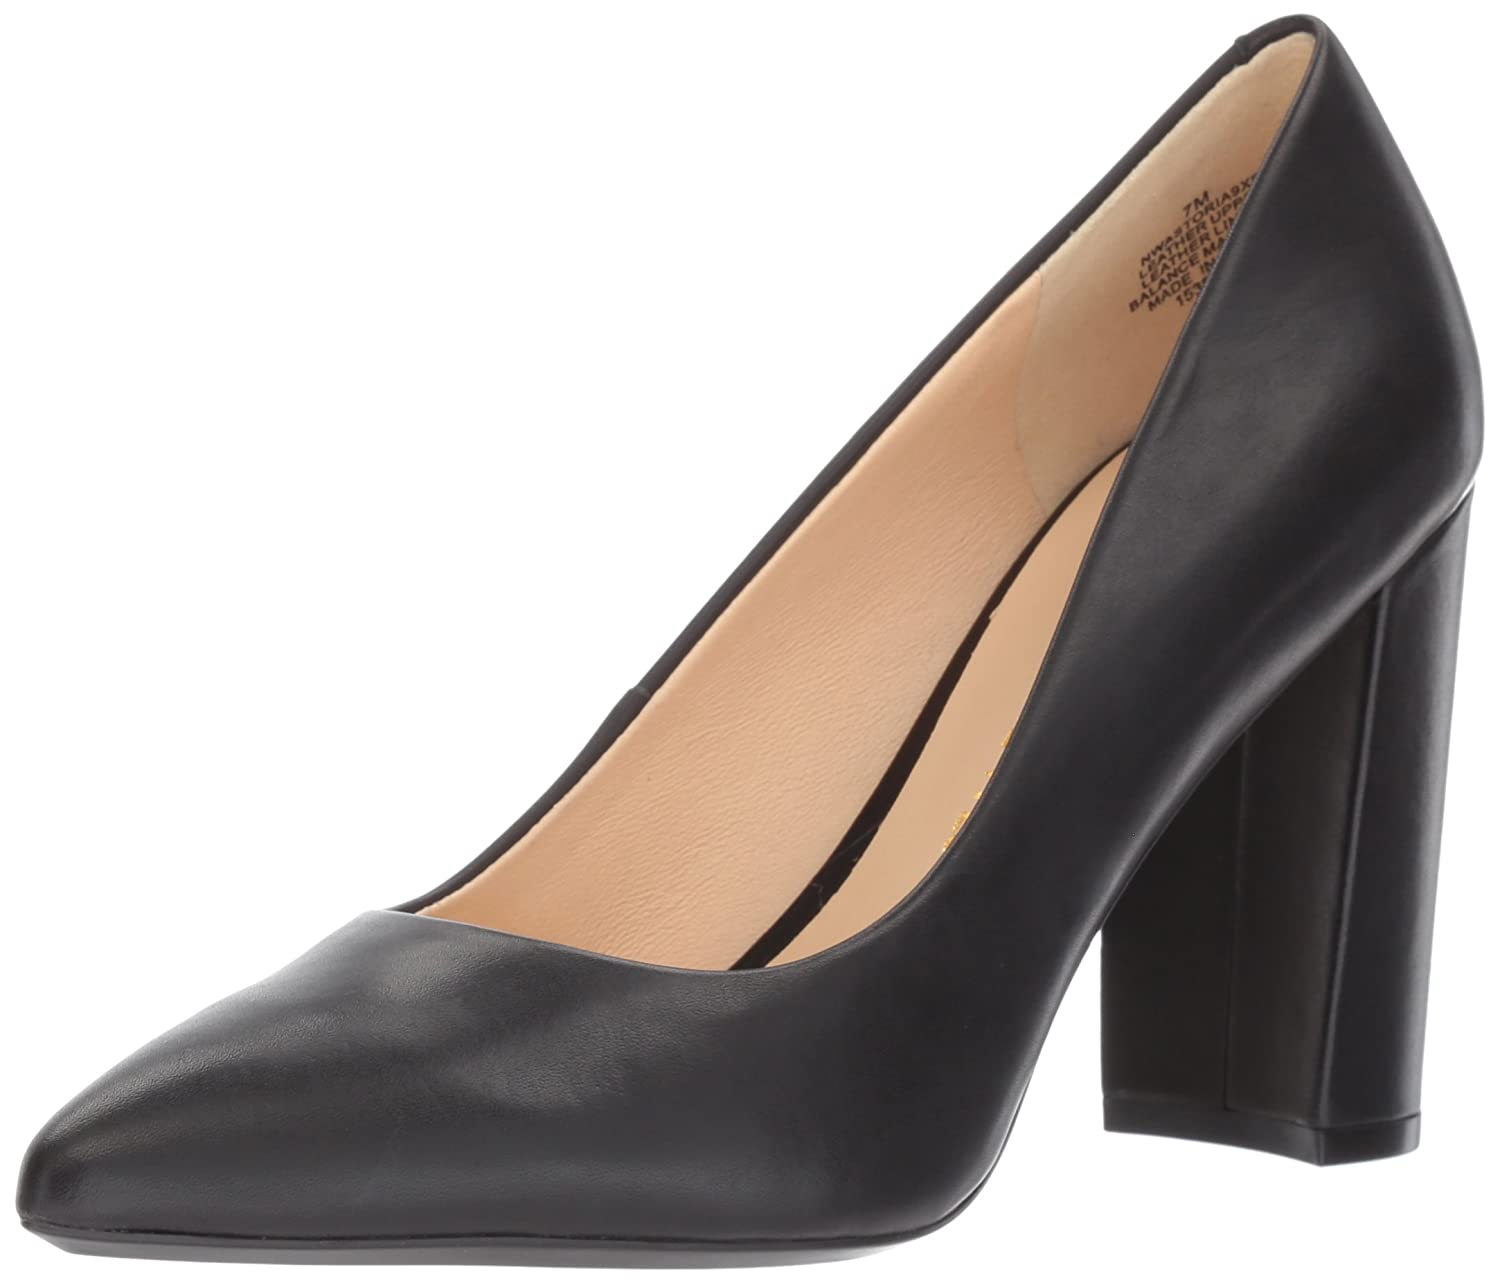 Nine West Women's Astoria Pump B06WLKY6DL 10.5 B(M) US|Black Leather